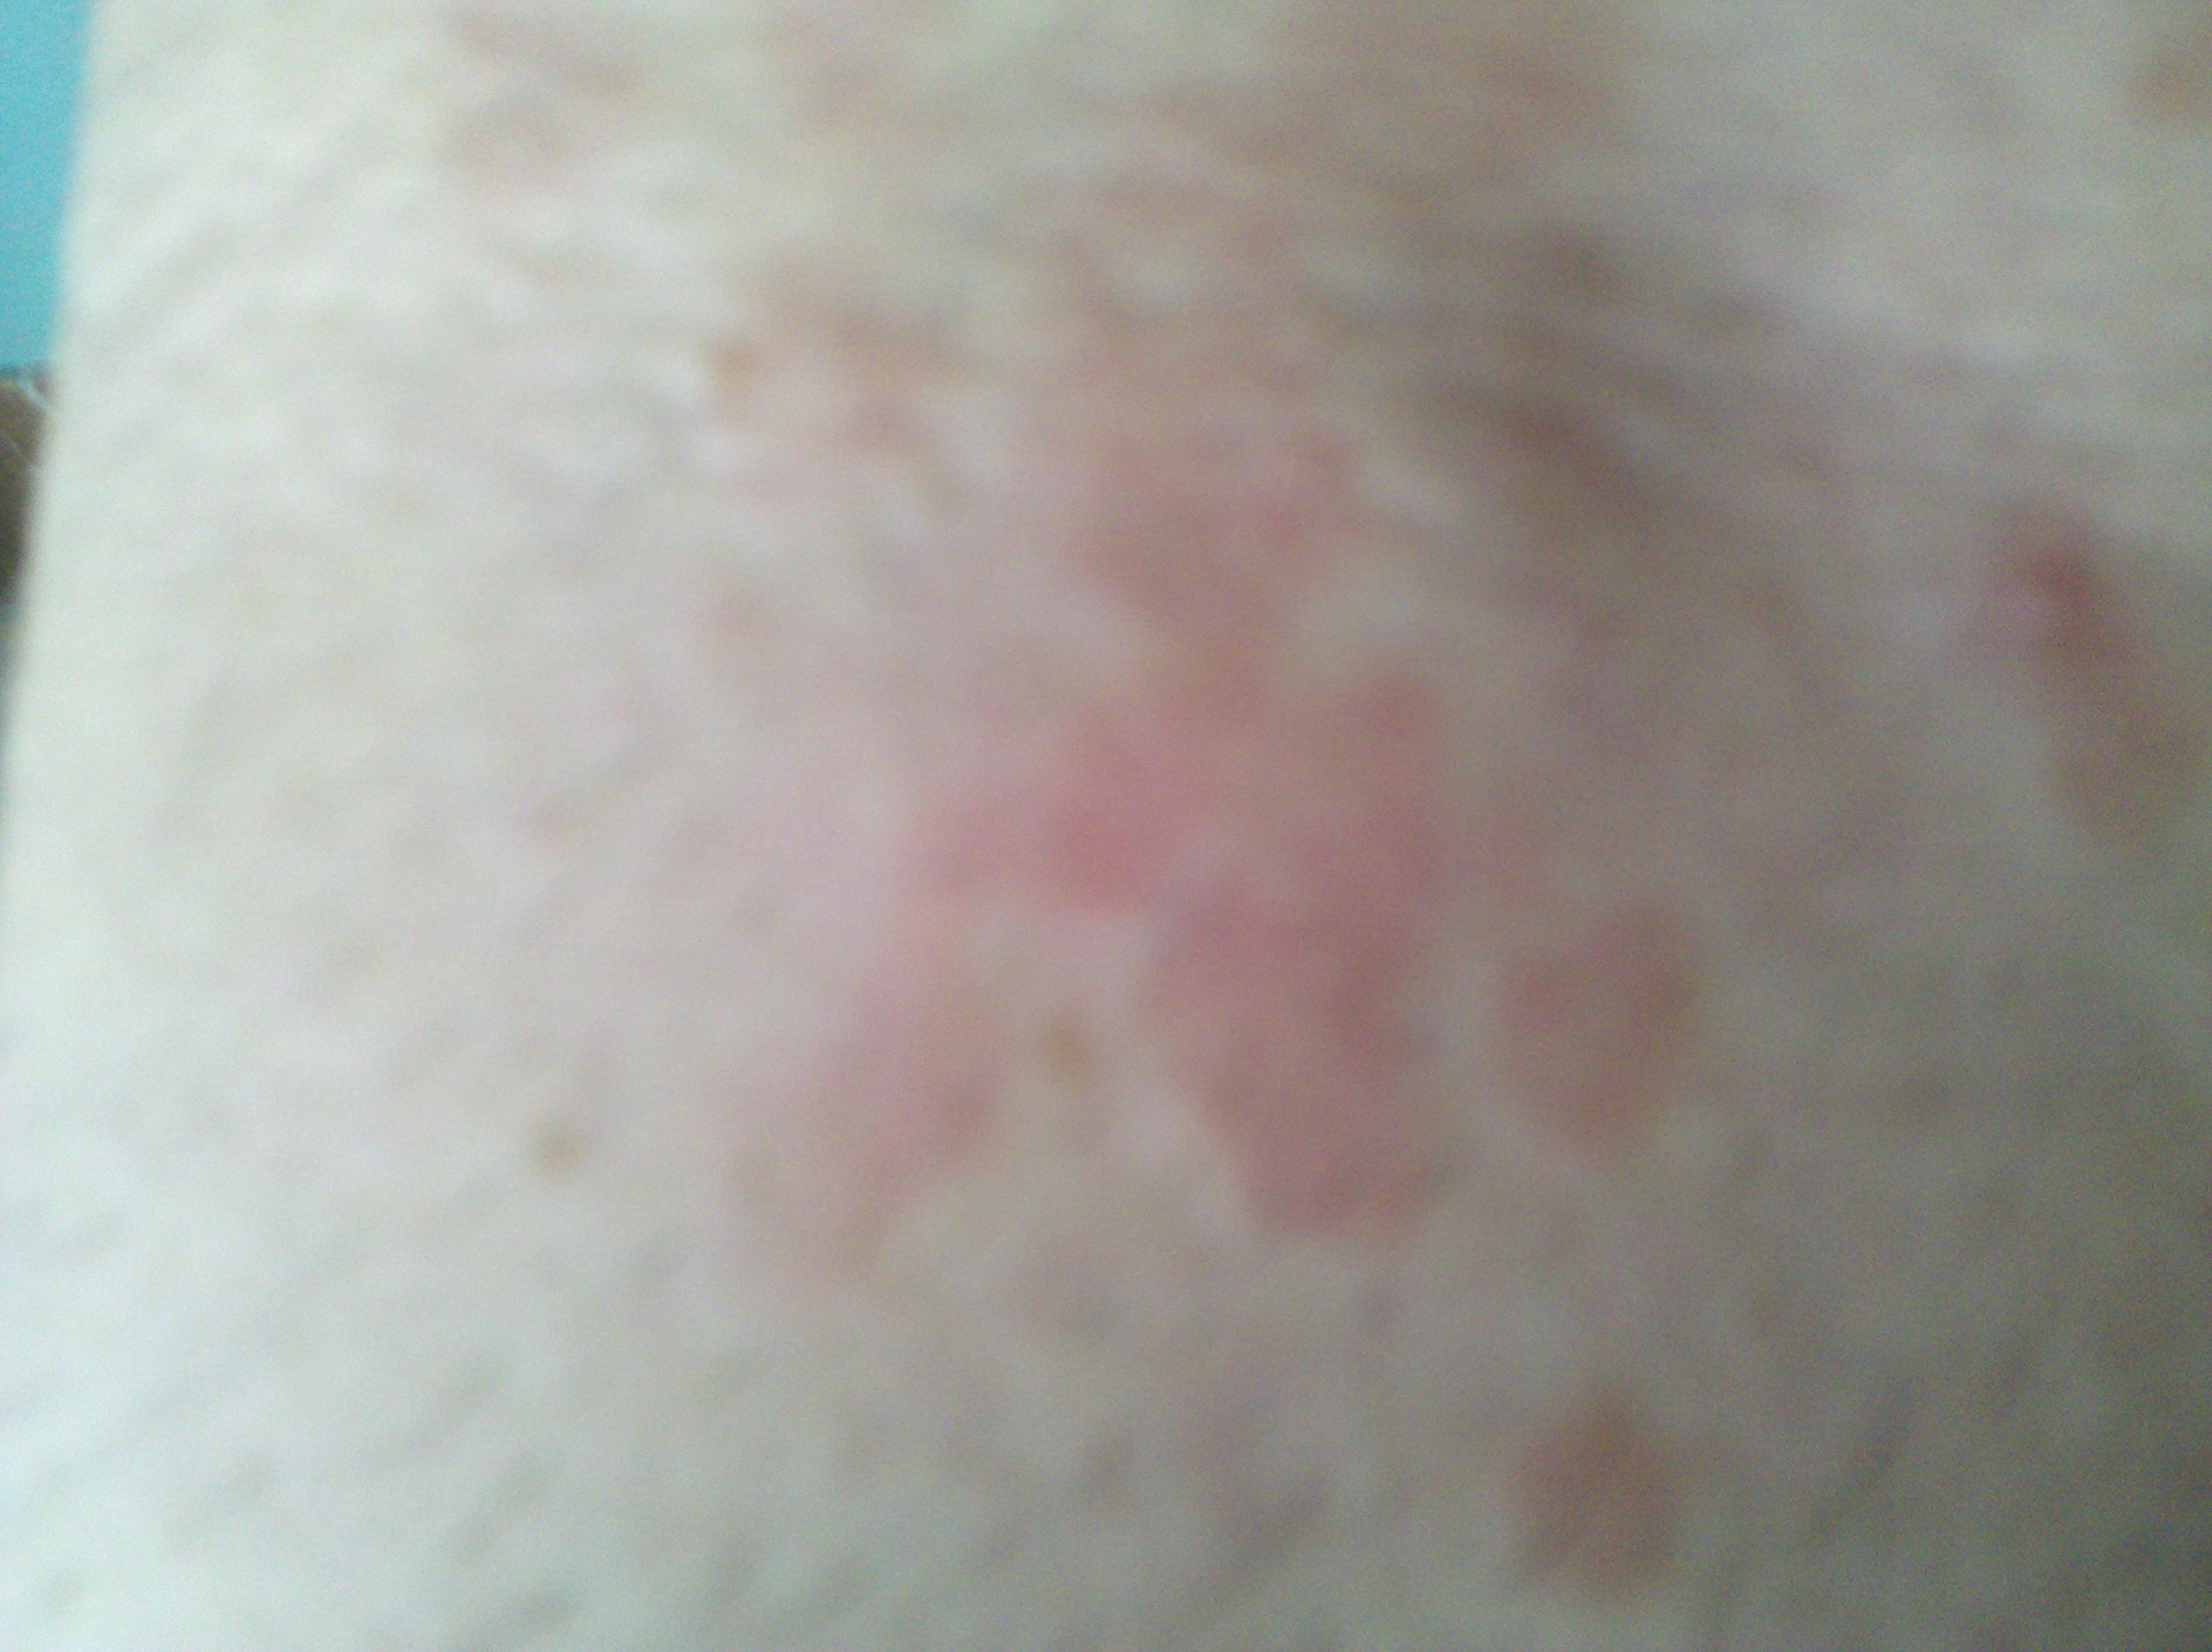 two red rashes inside elbow crease with bumps around rash ...